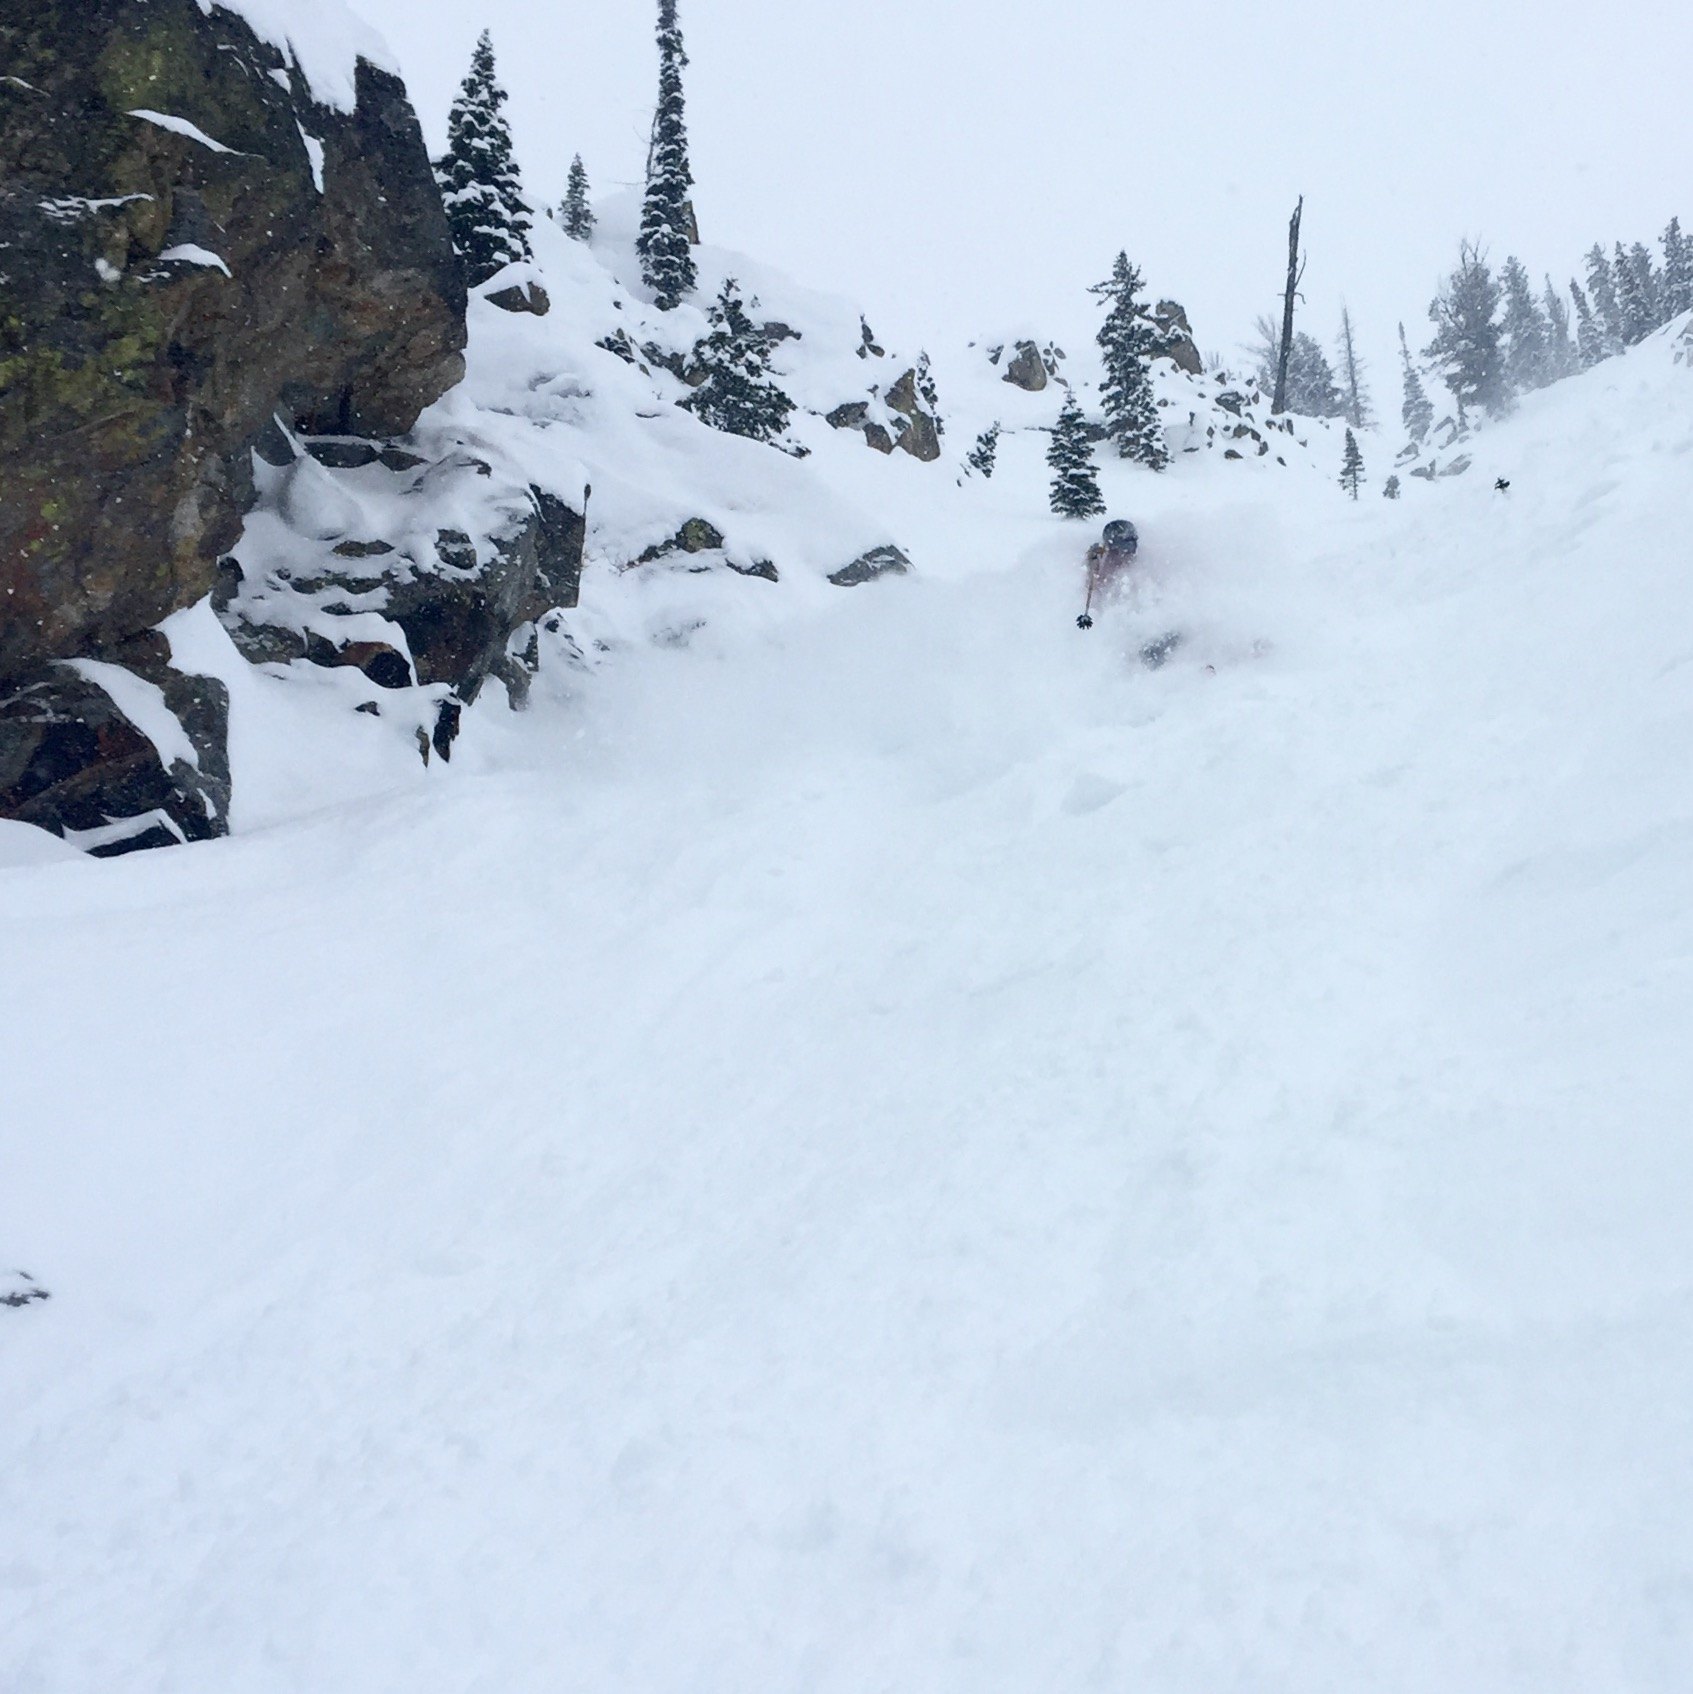 Pete's first turns in Granite were...good.